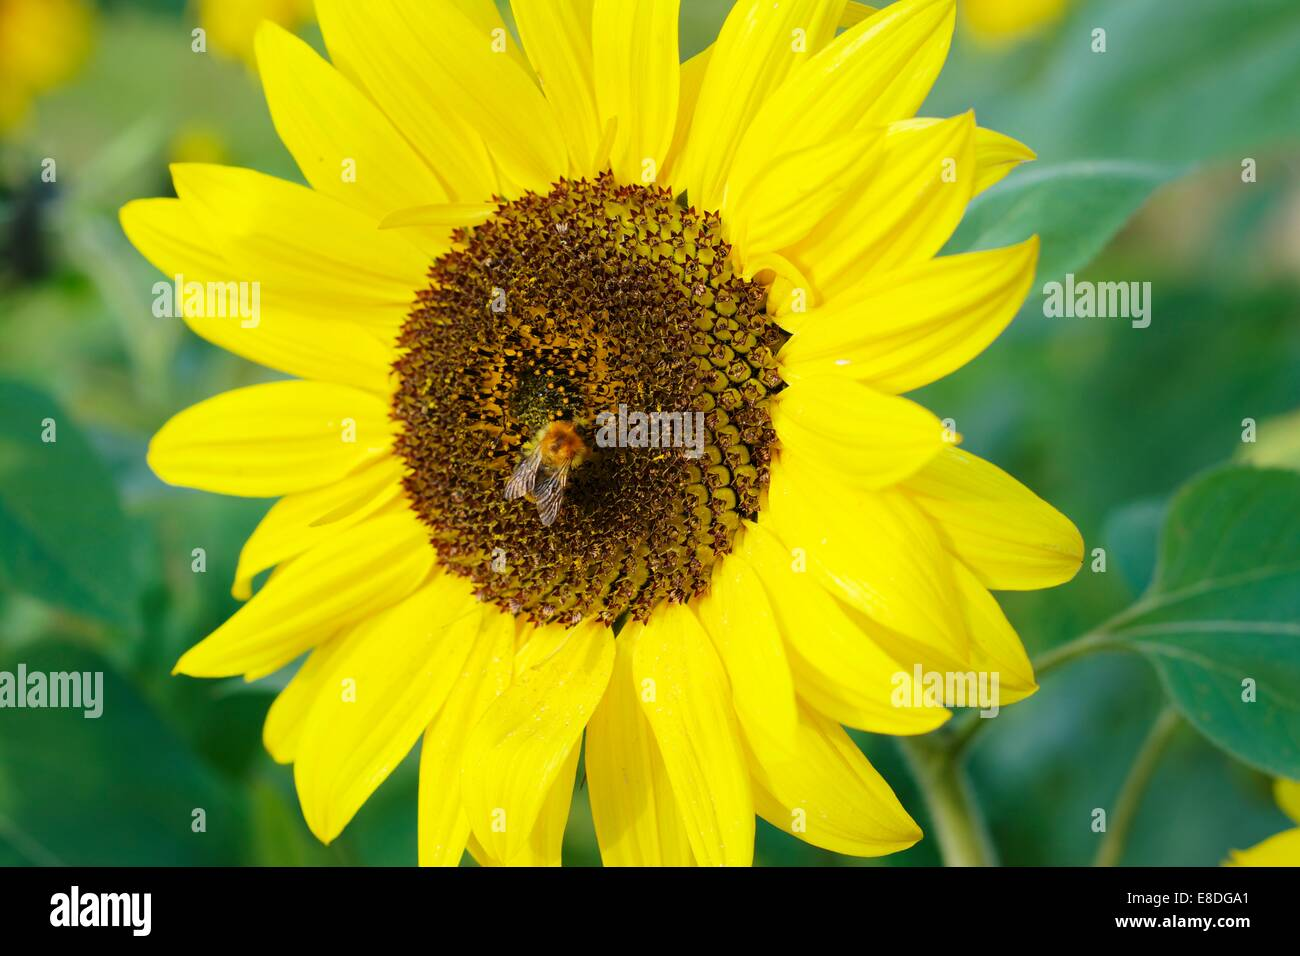 Humble bee on a sunflower - Stock Image